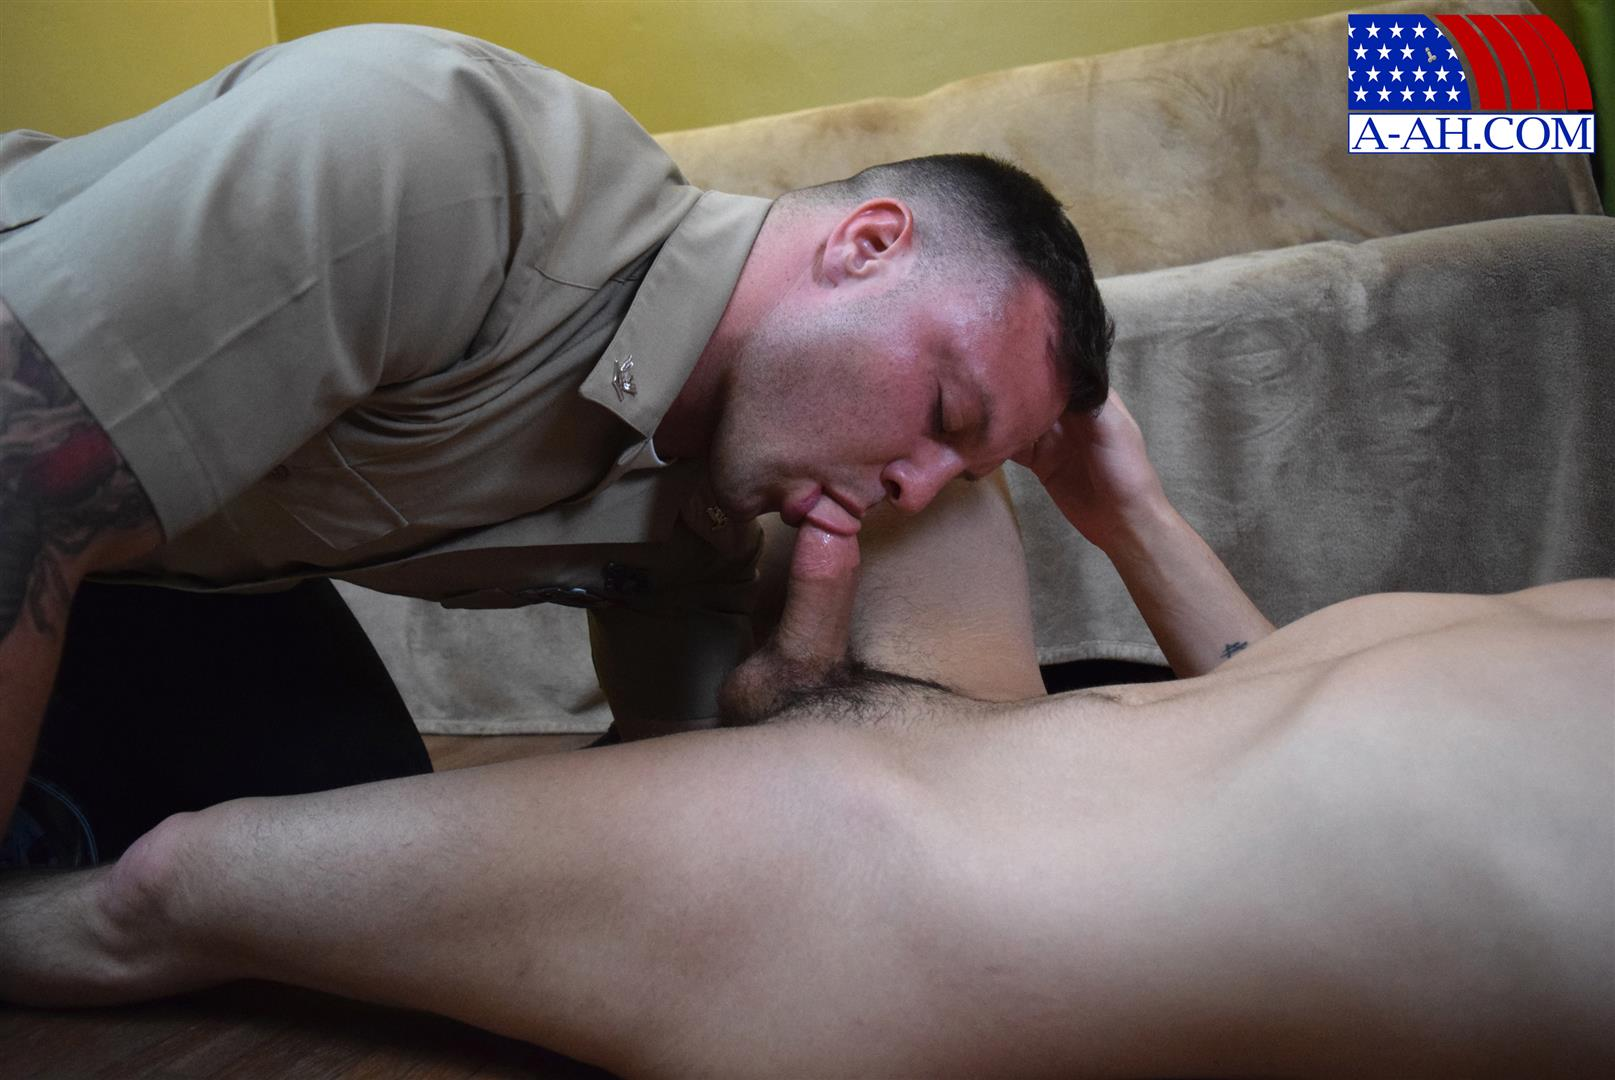 All American Heroes Naked Navy Guy Barebacking a Muscle Twink Amateur Gay Porn 04 Muscular Navy Corpsman Barebacking His Younger Workout Partner